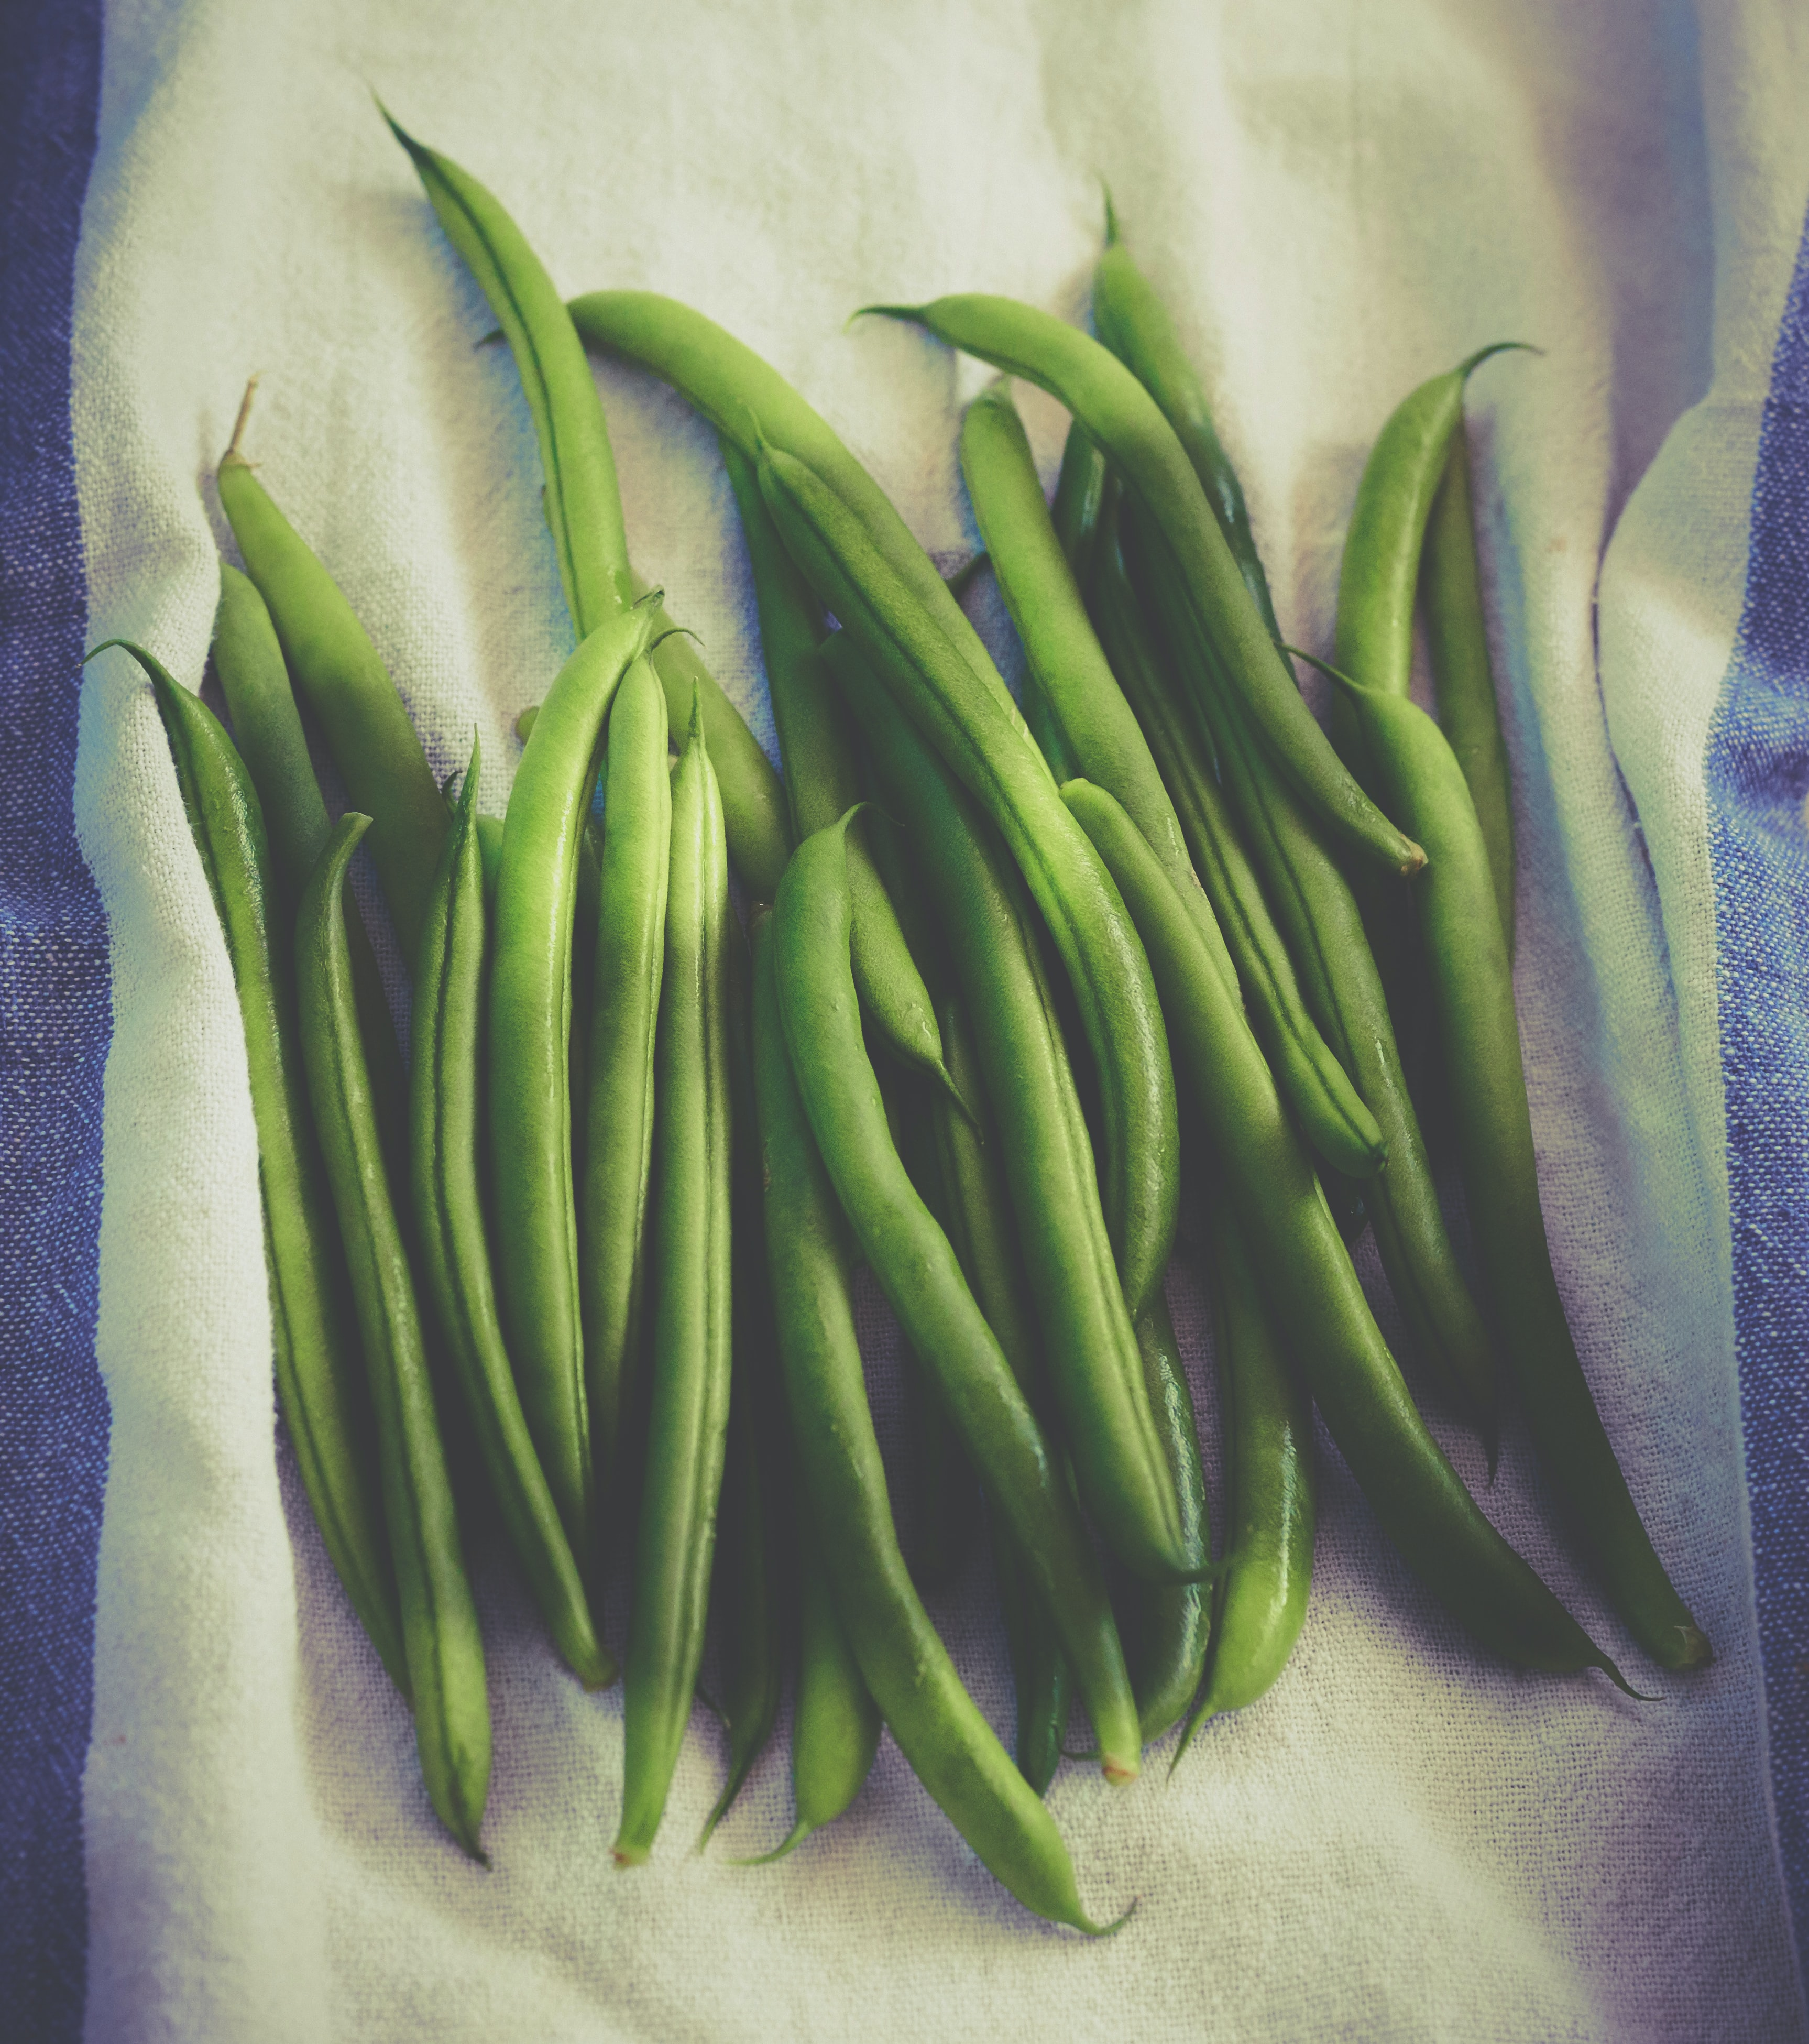 bunch of green beans